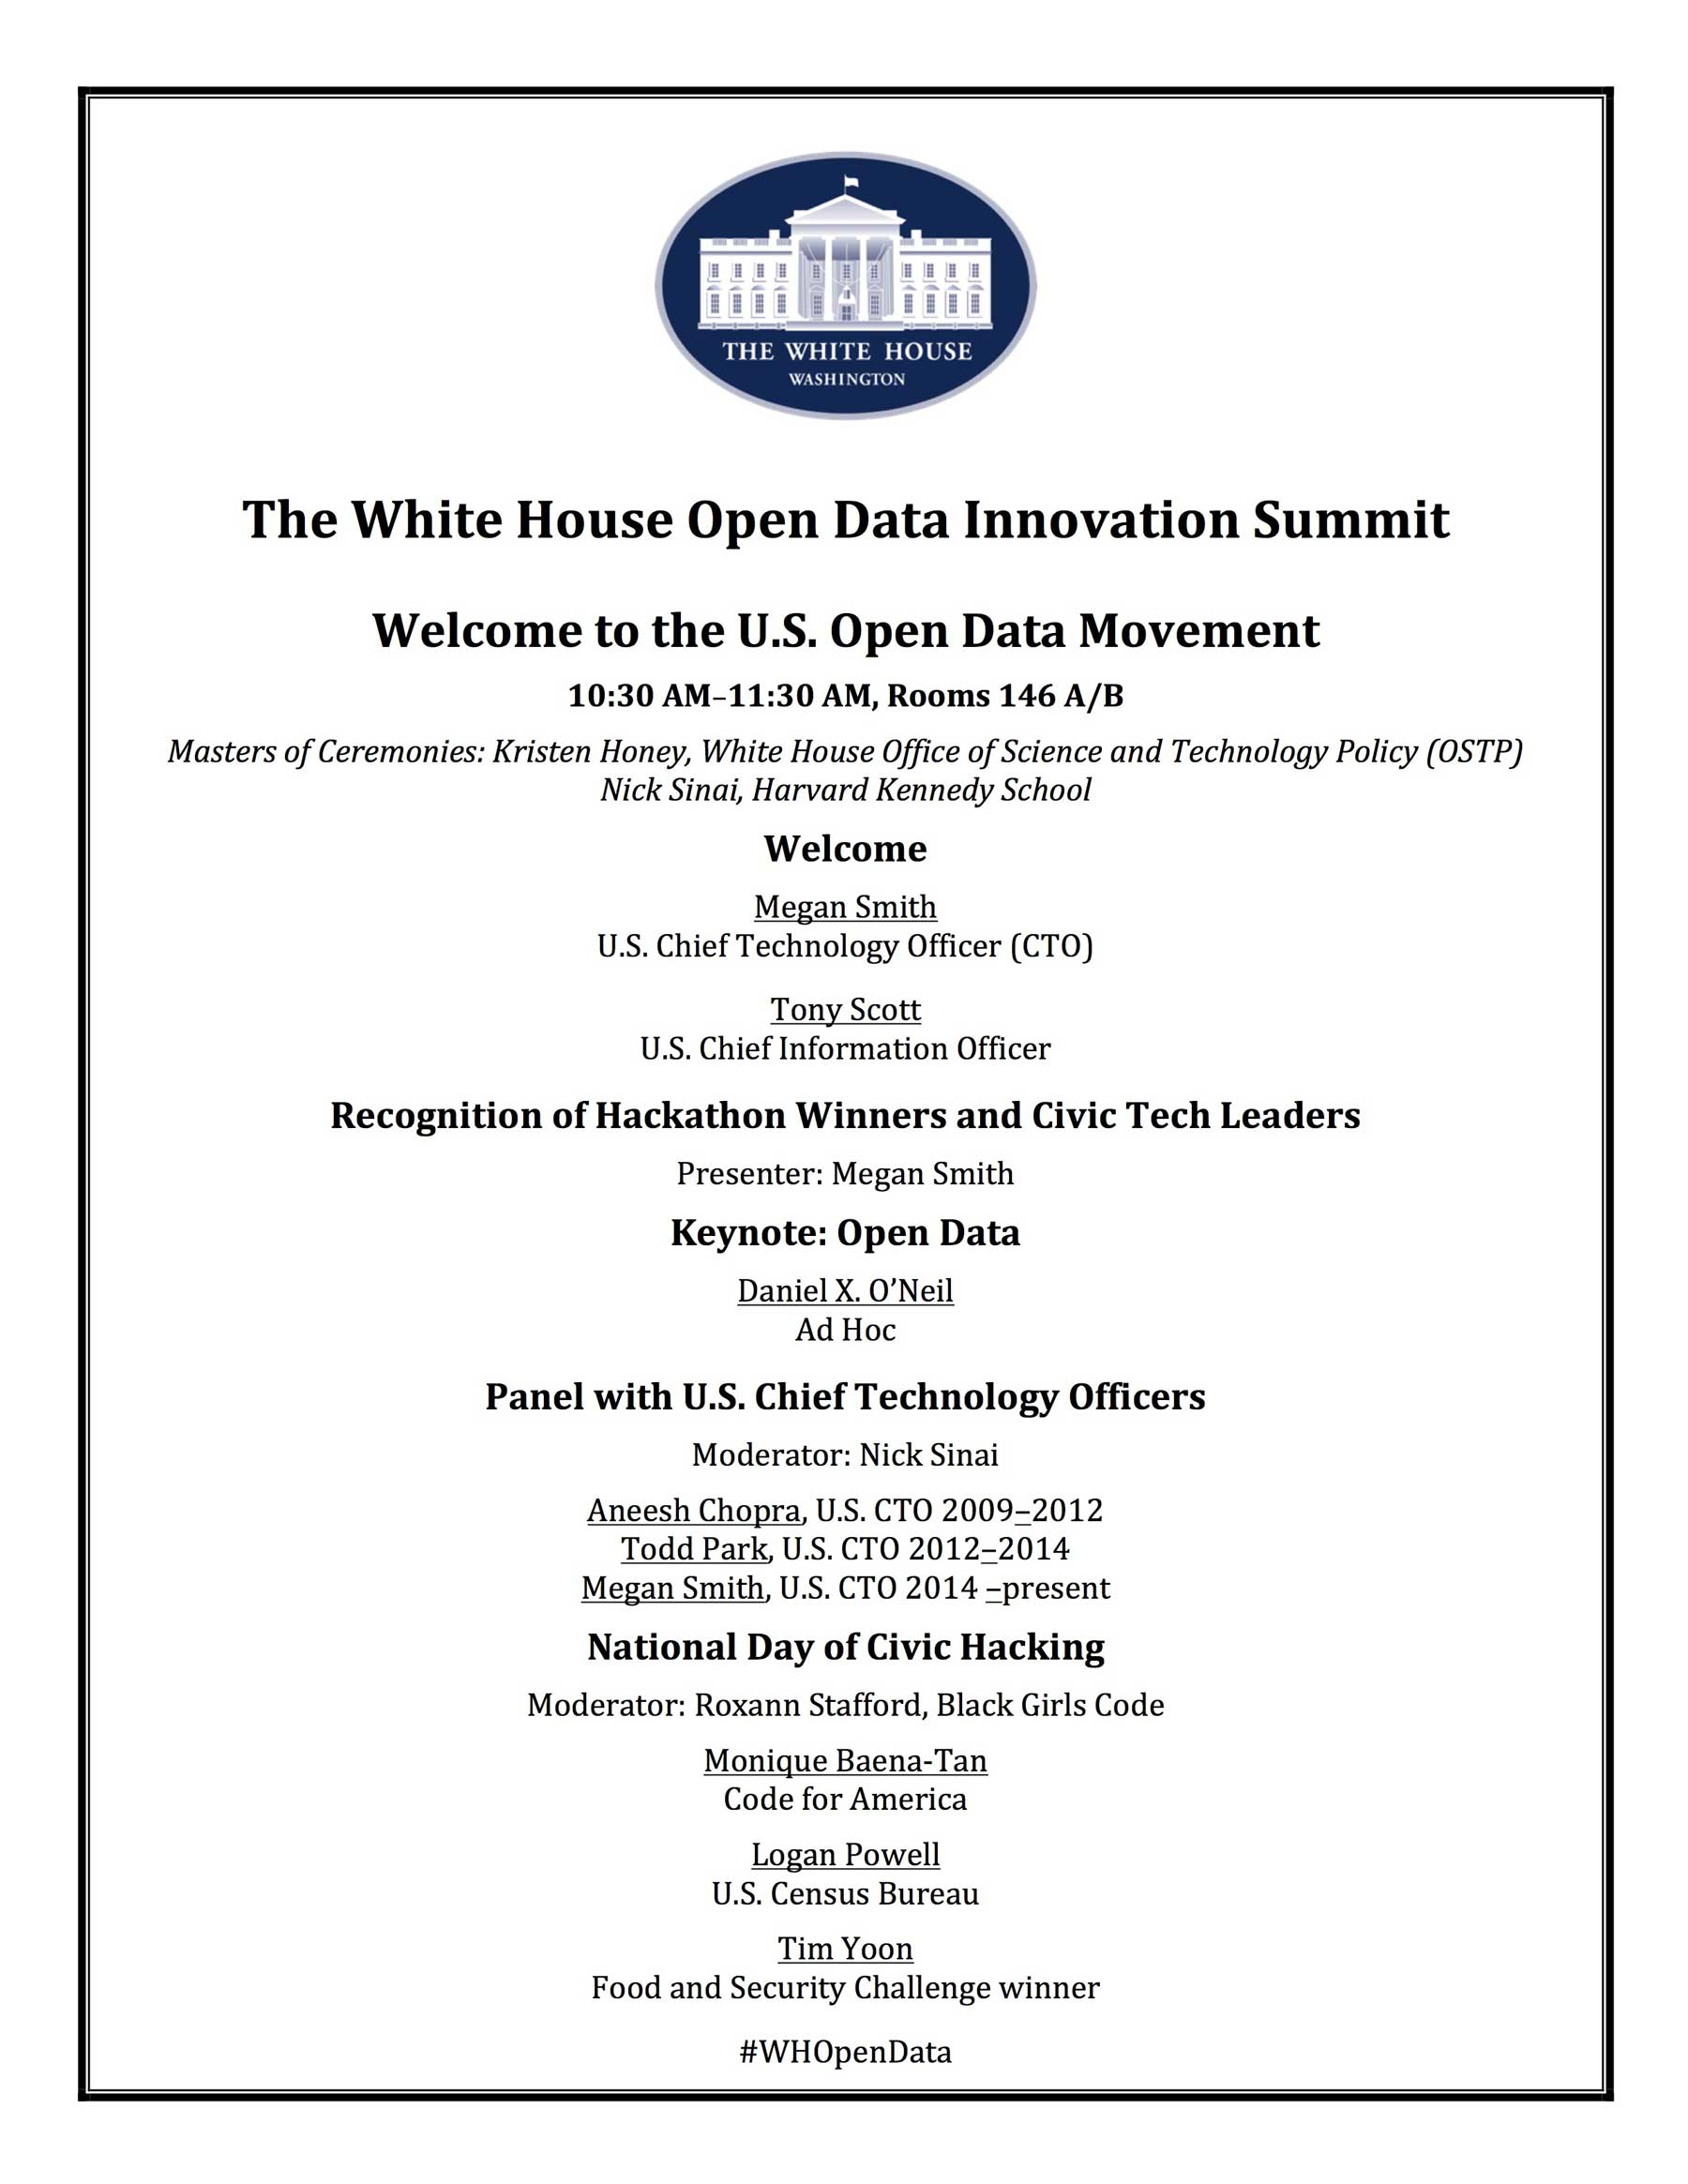 Open Data summit program